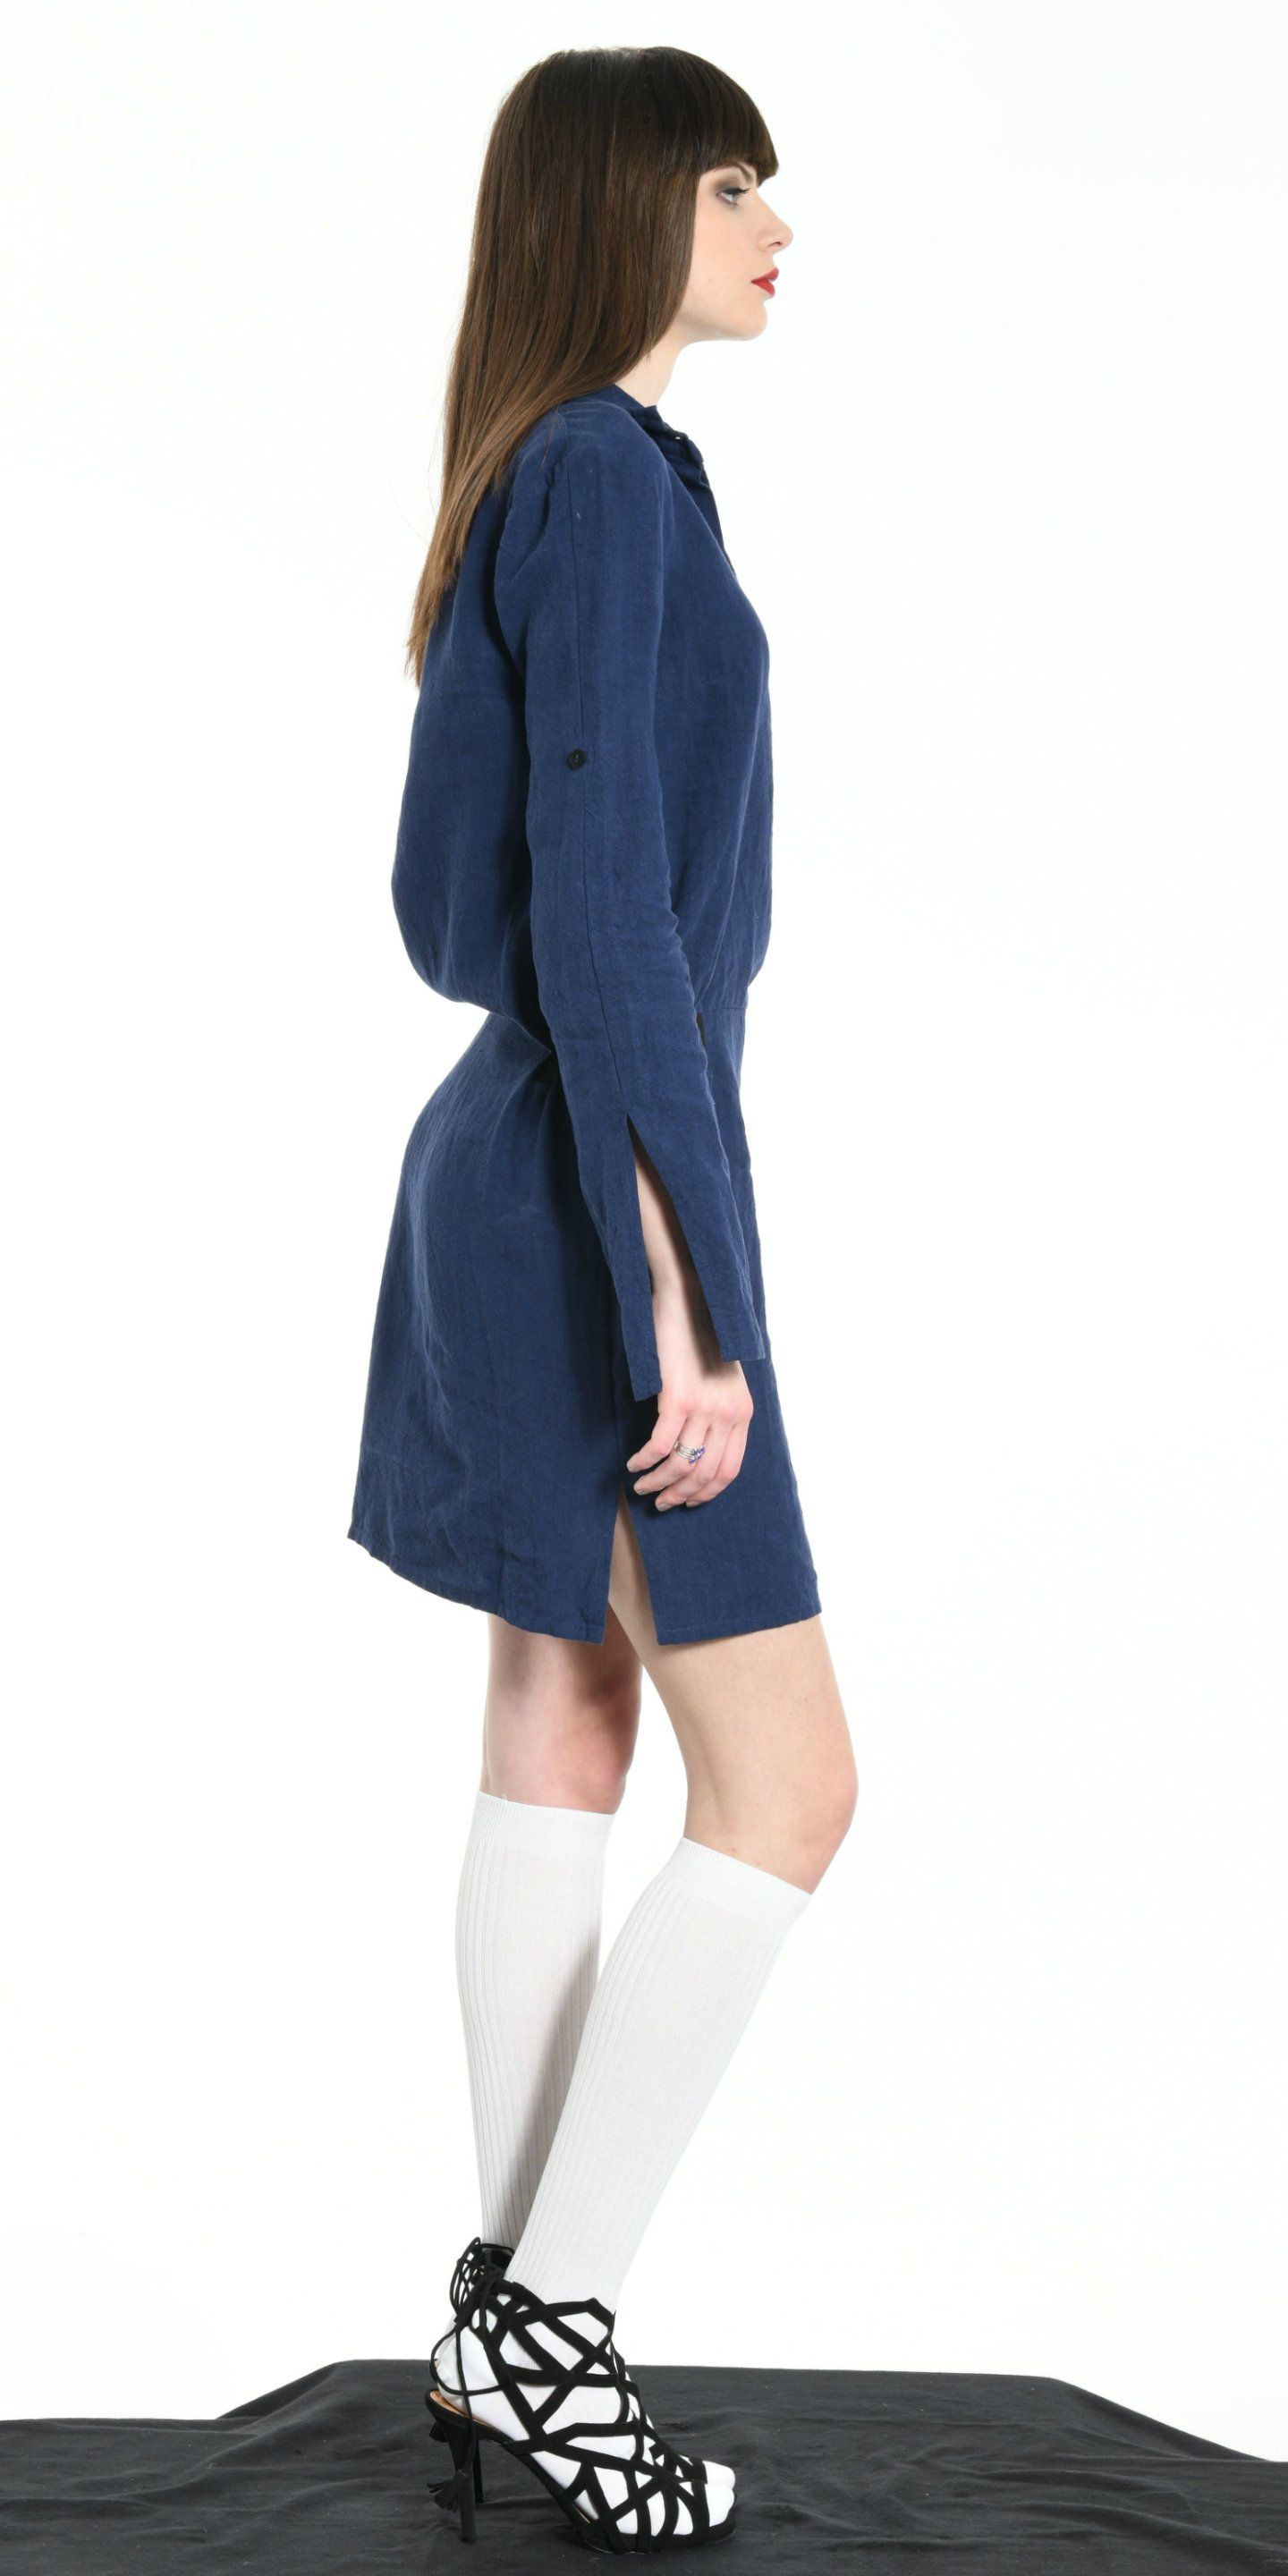 SHORT DRESS BLUE from BEARD & FRINGE